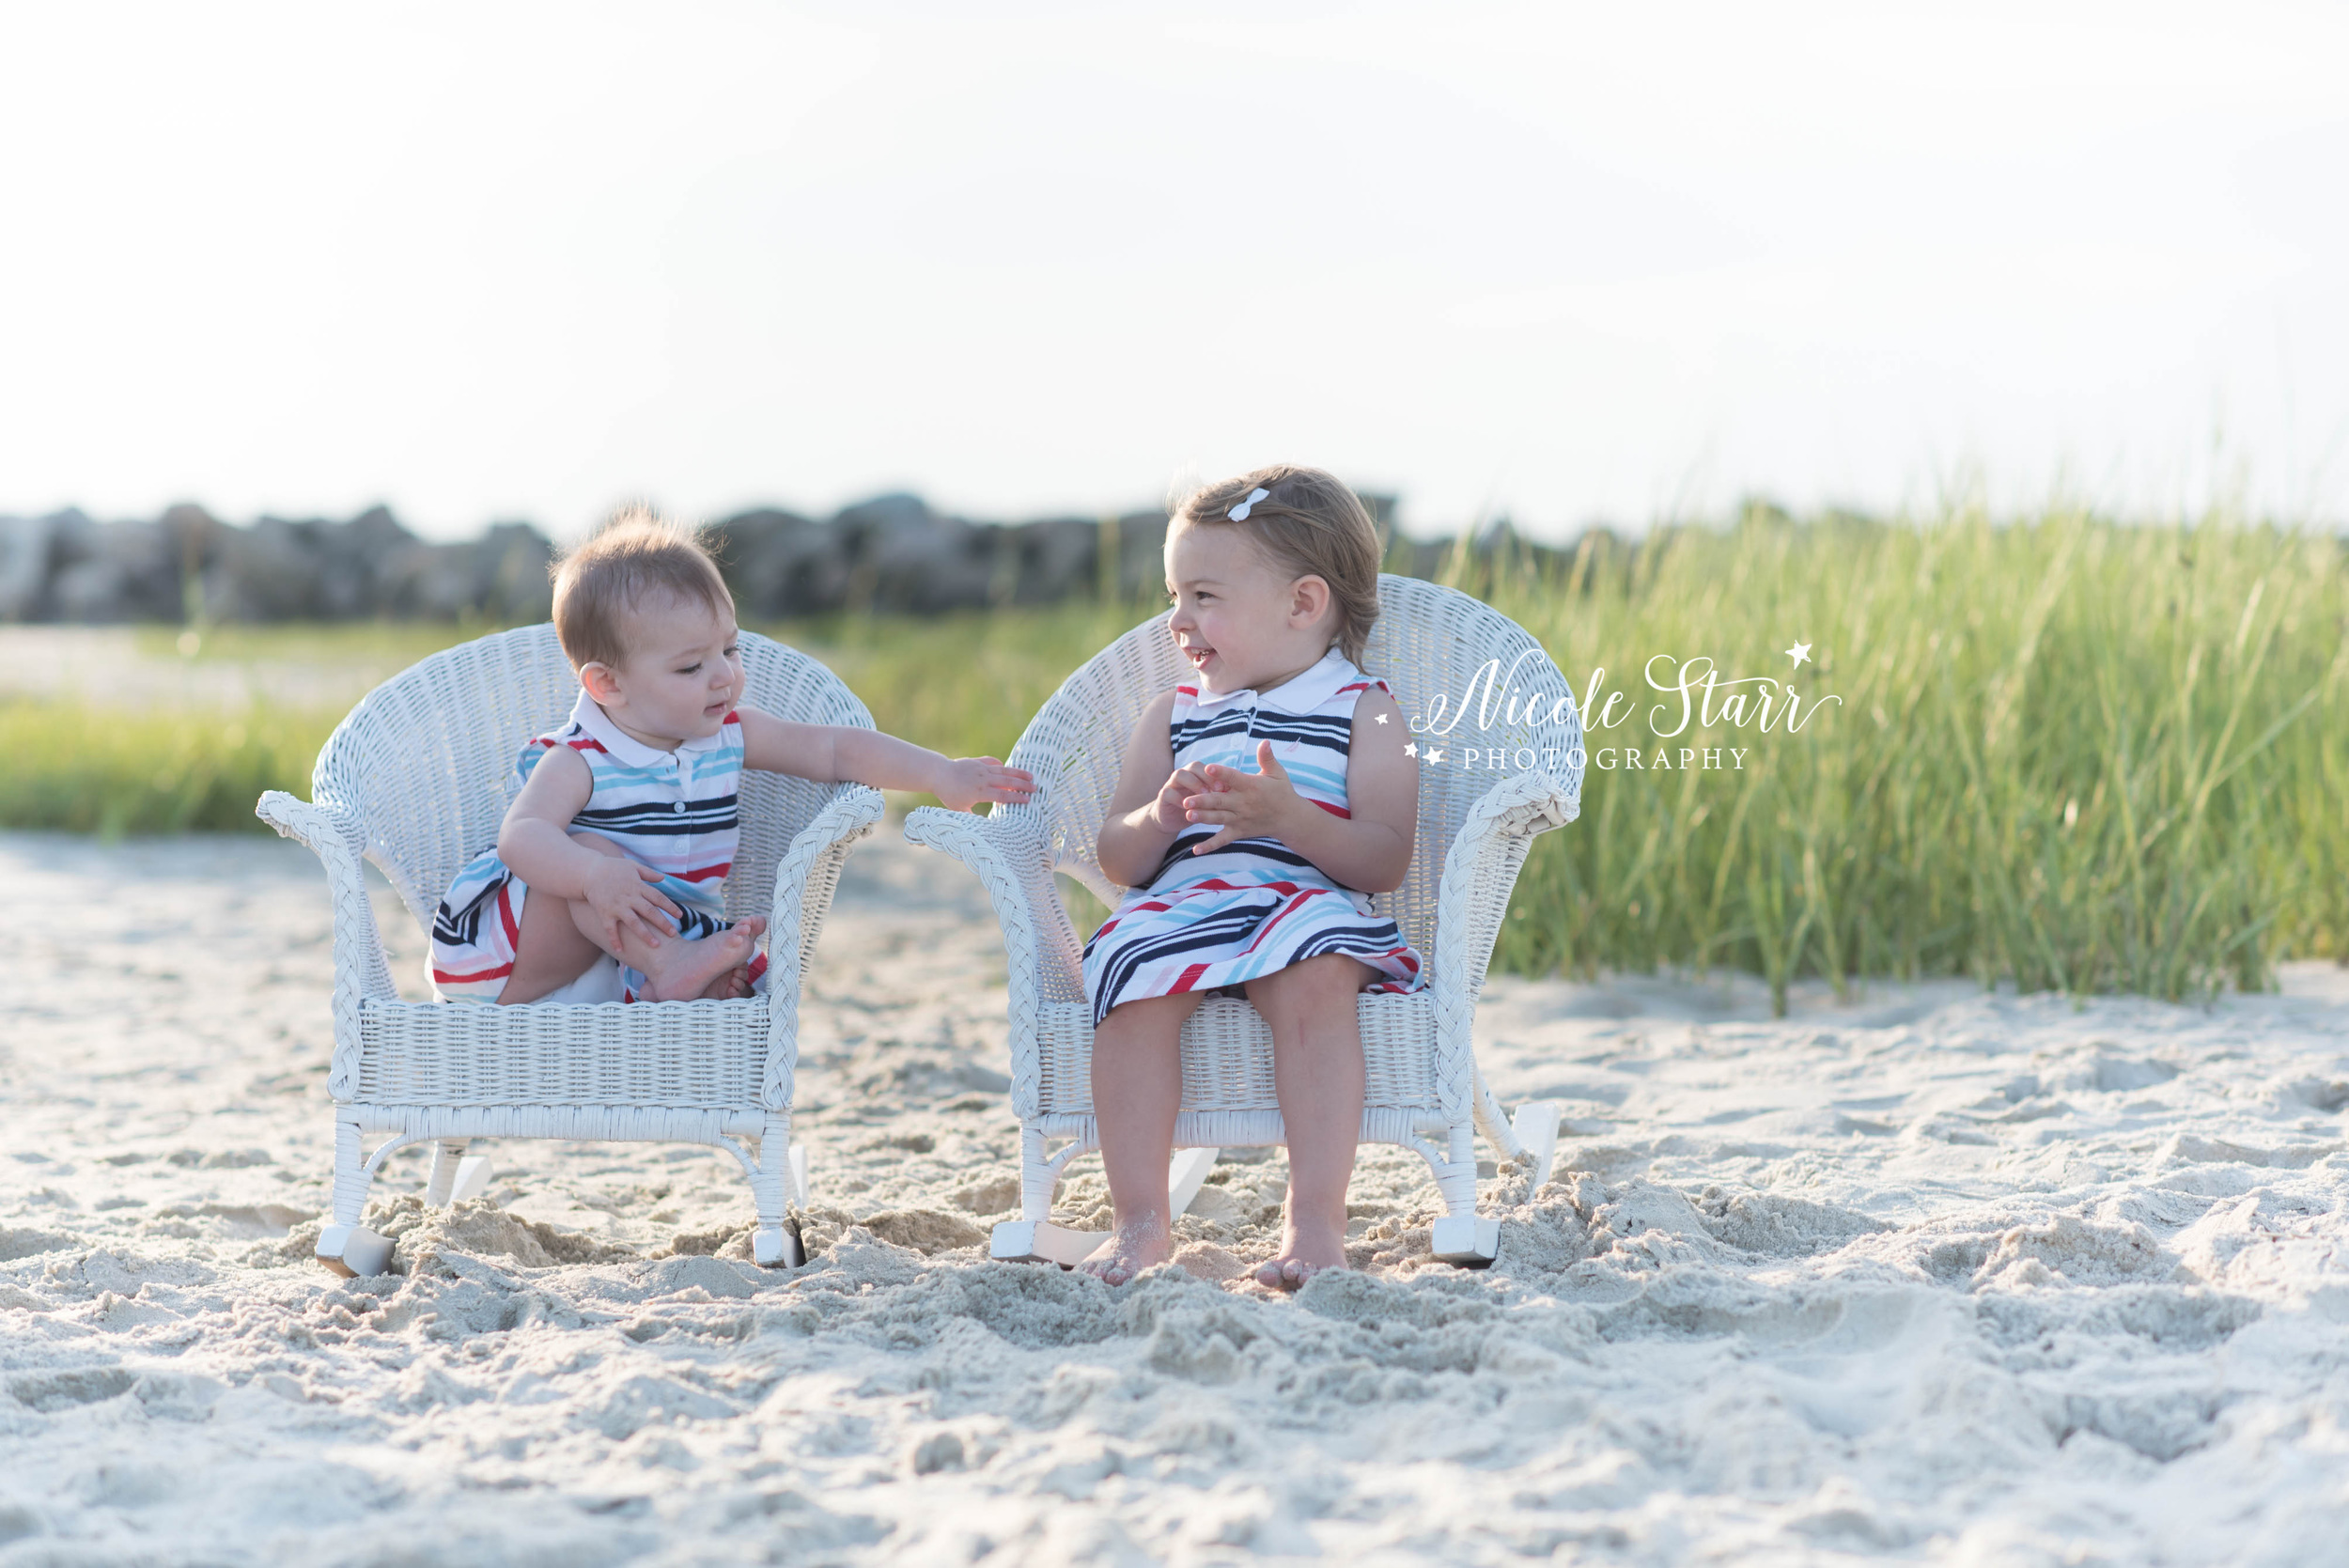 July 4 Photo Shoot on the Beach with New York Photographer Nicole Starr Photography, Cape Cod portrait session